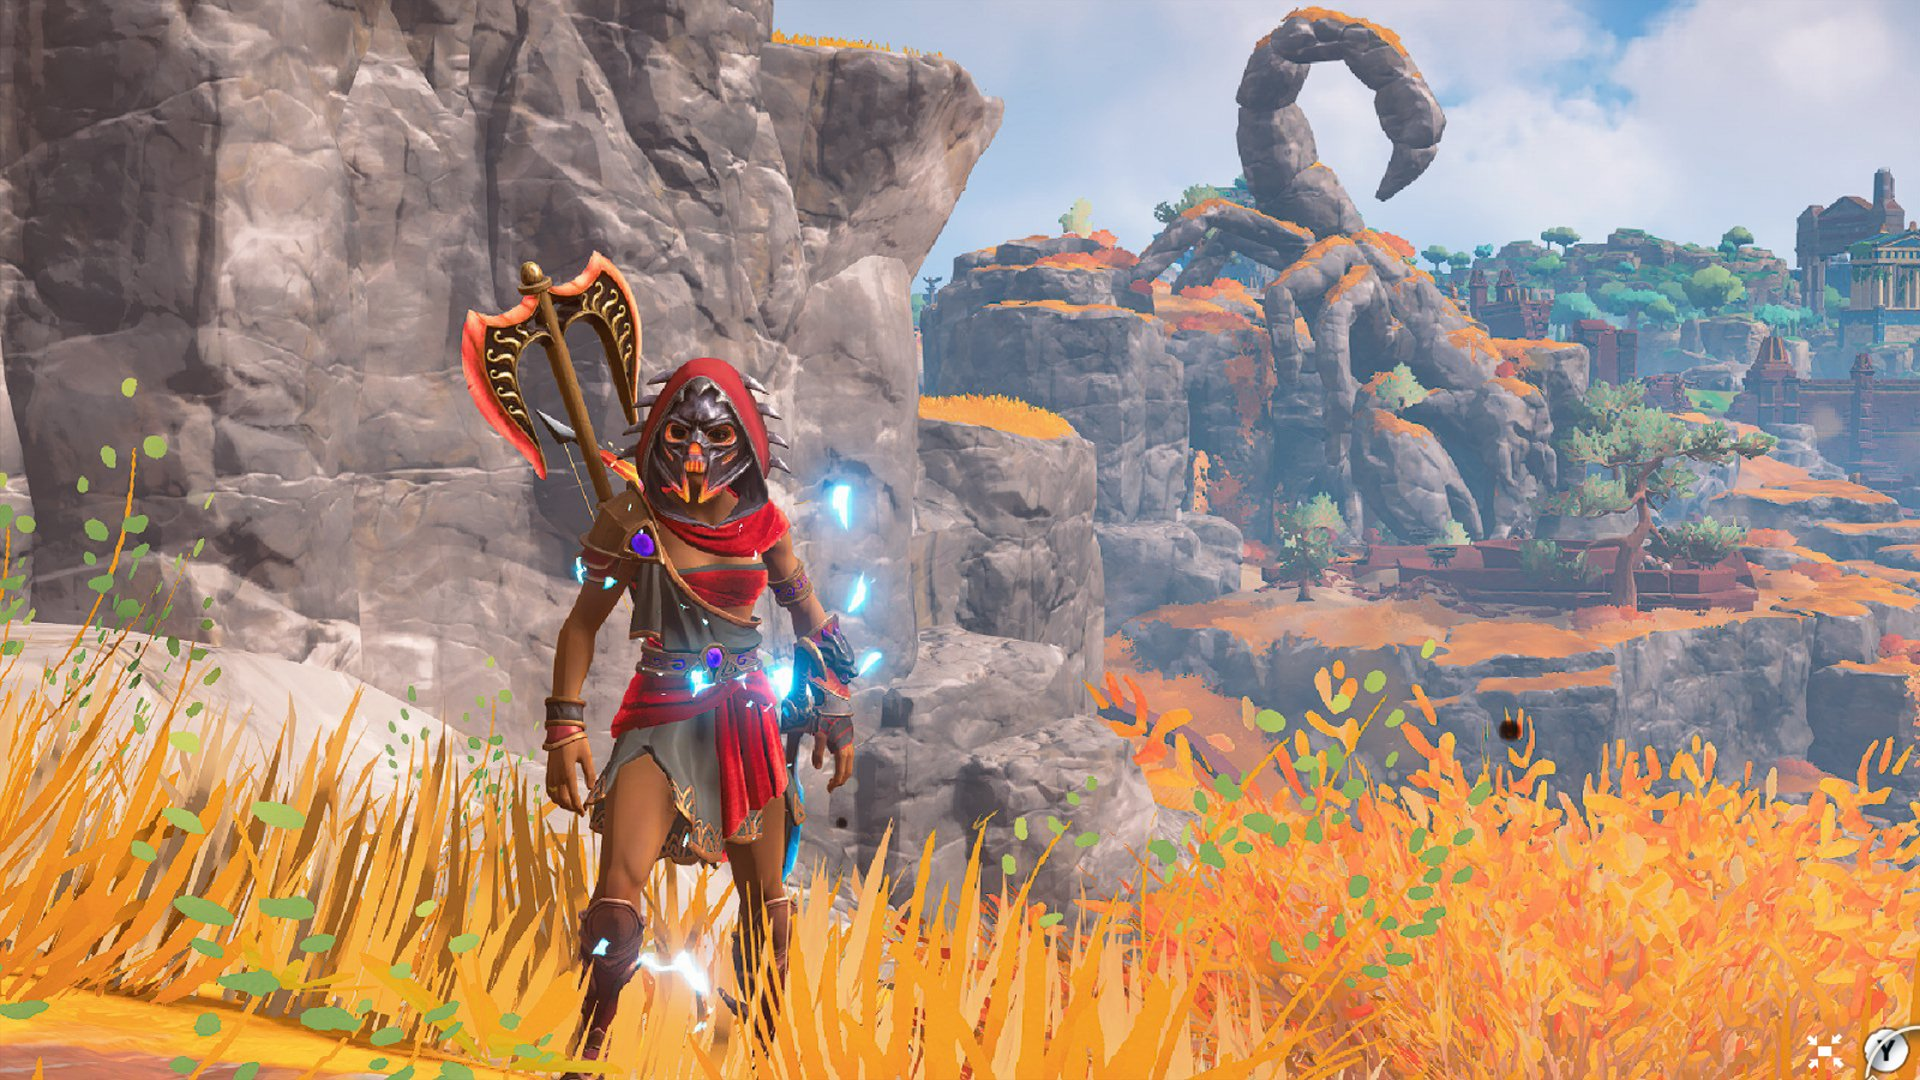 A screenshot of your axe-wielding, mask-wearing hero with a huge scorpion statue in the background.